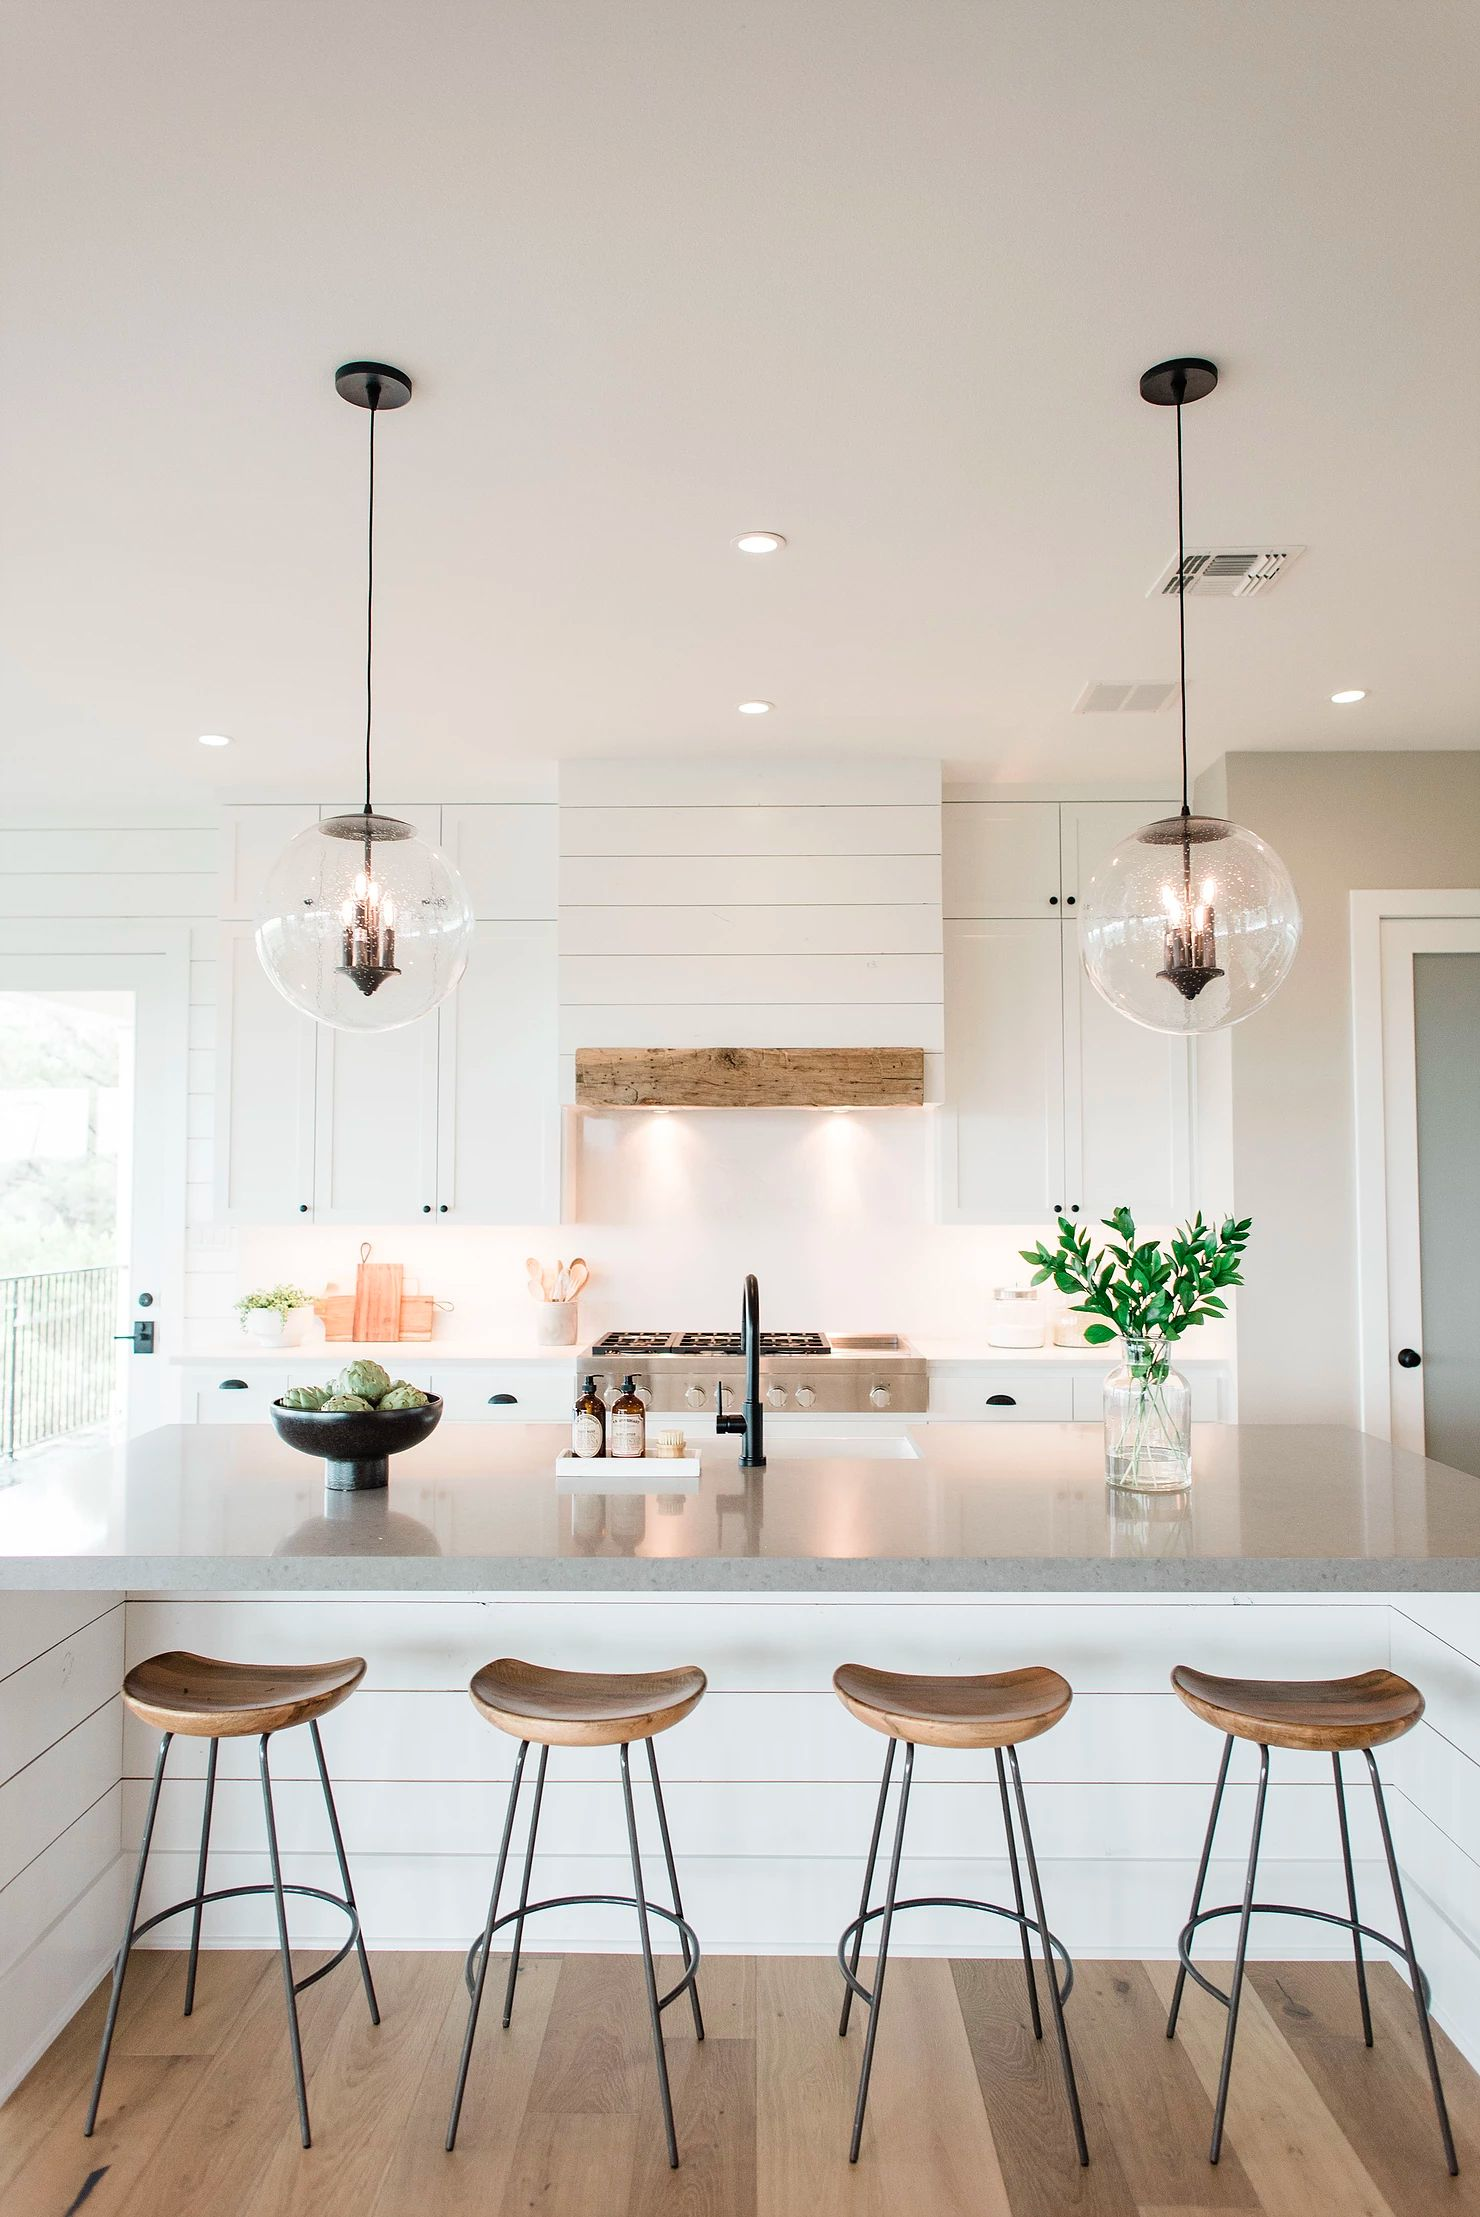 Beautiful kitchen design with white cabinets and glass dome pendant lights #whit…